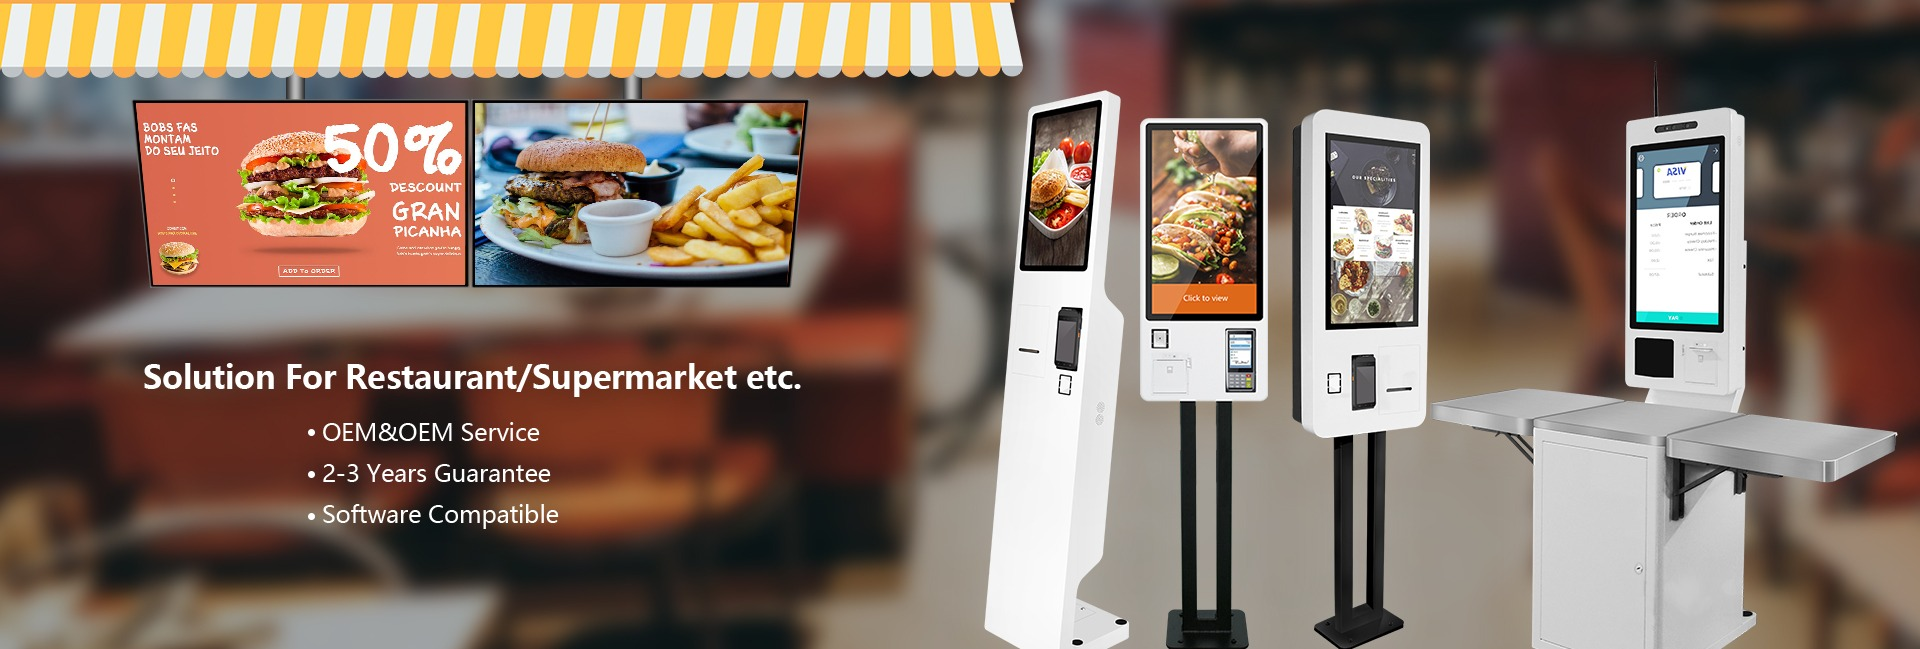 touch screen till monitor Digital Screens and self order kiosk